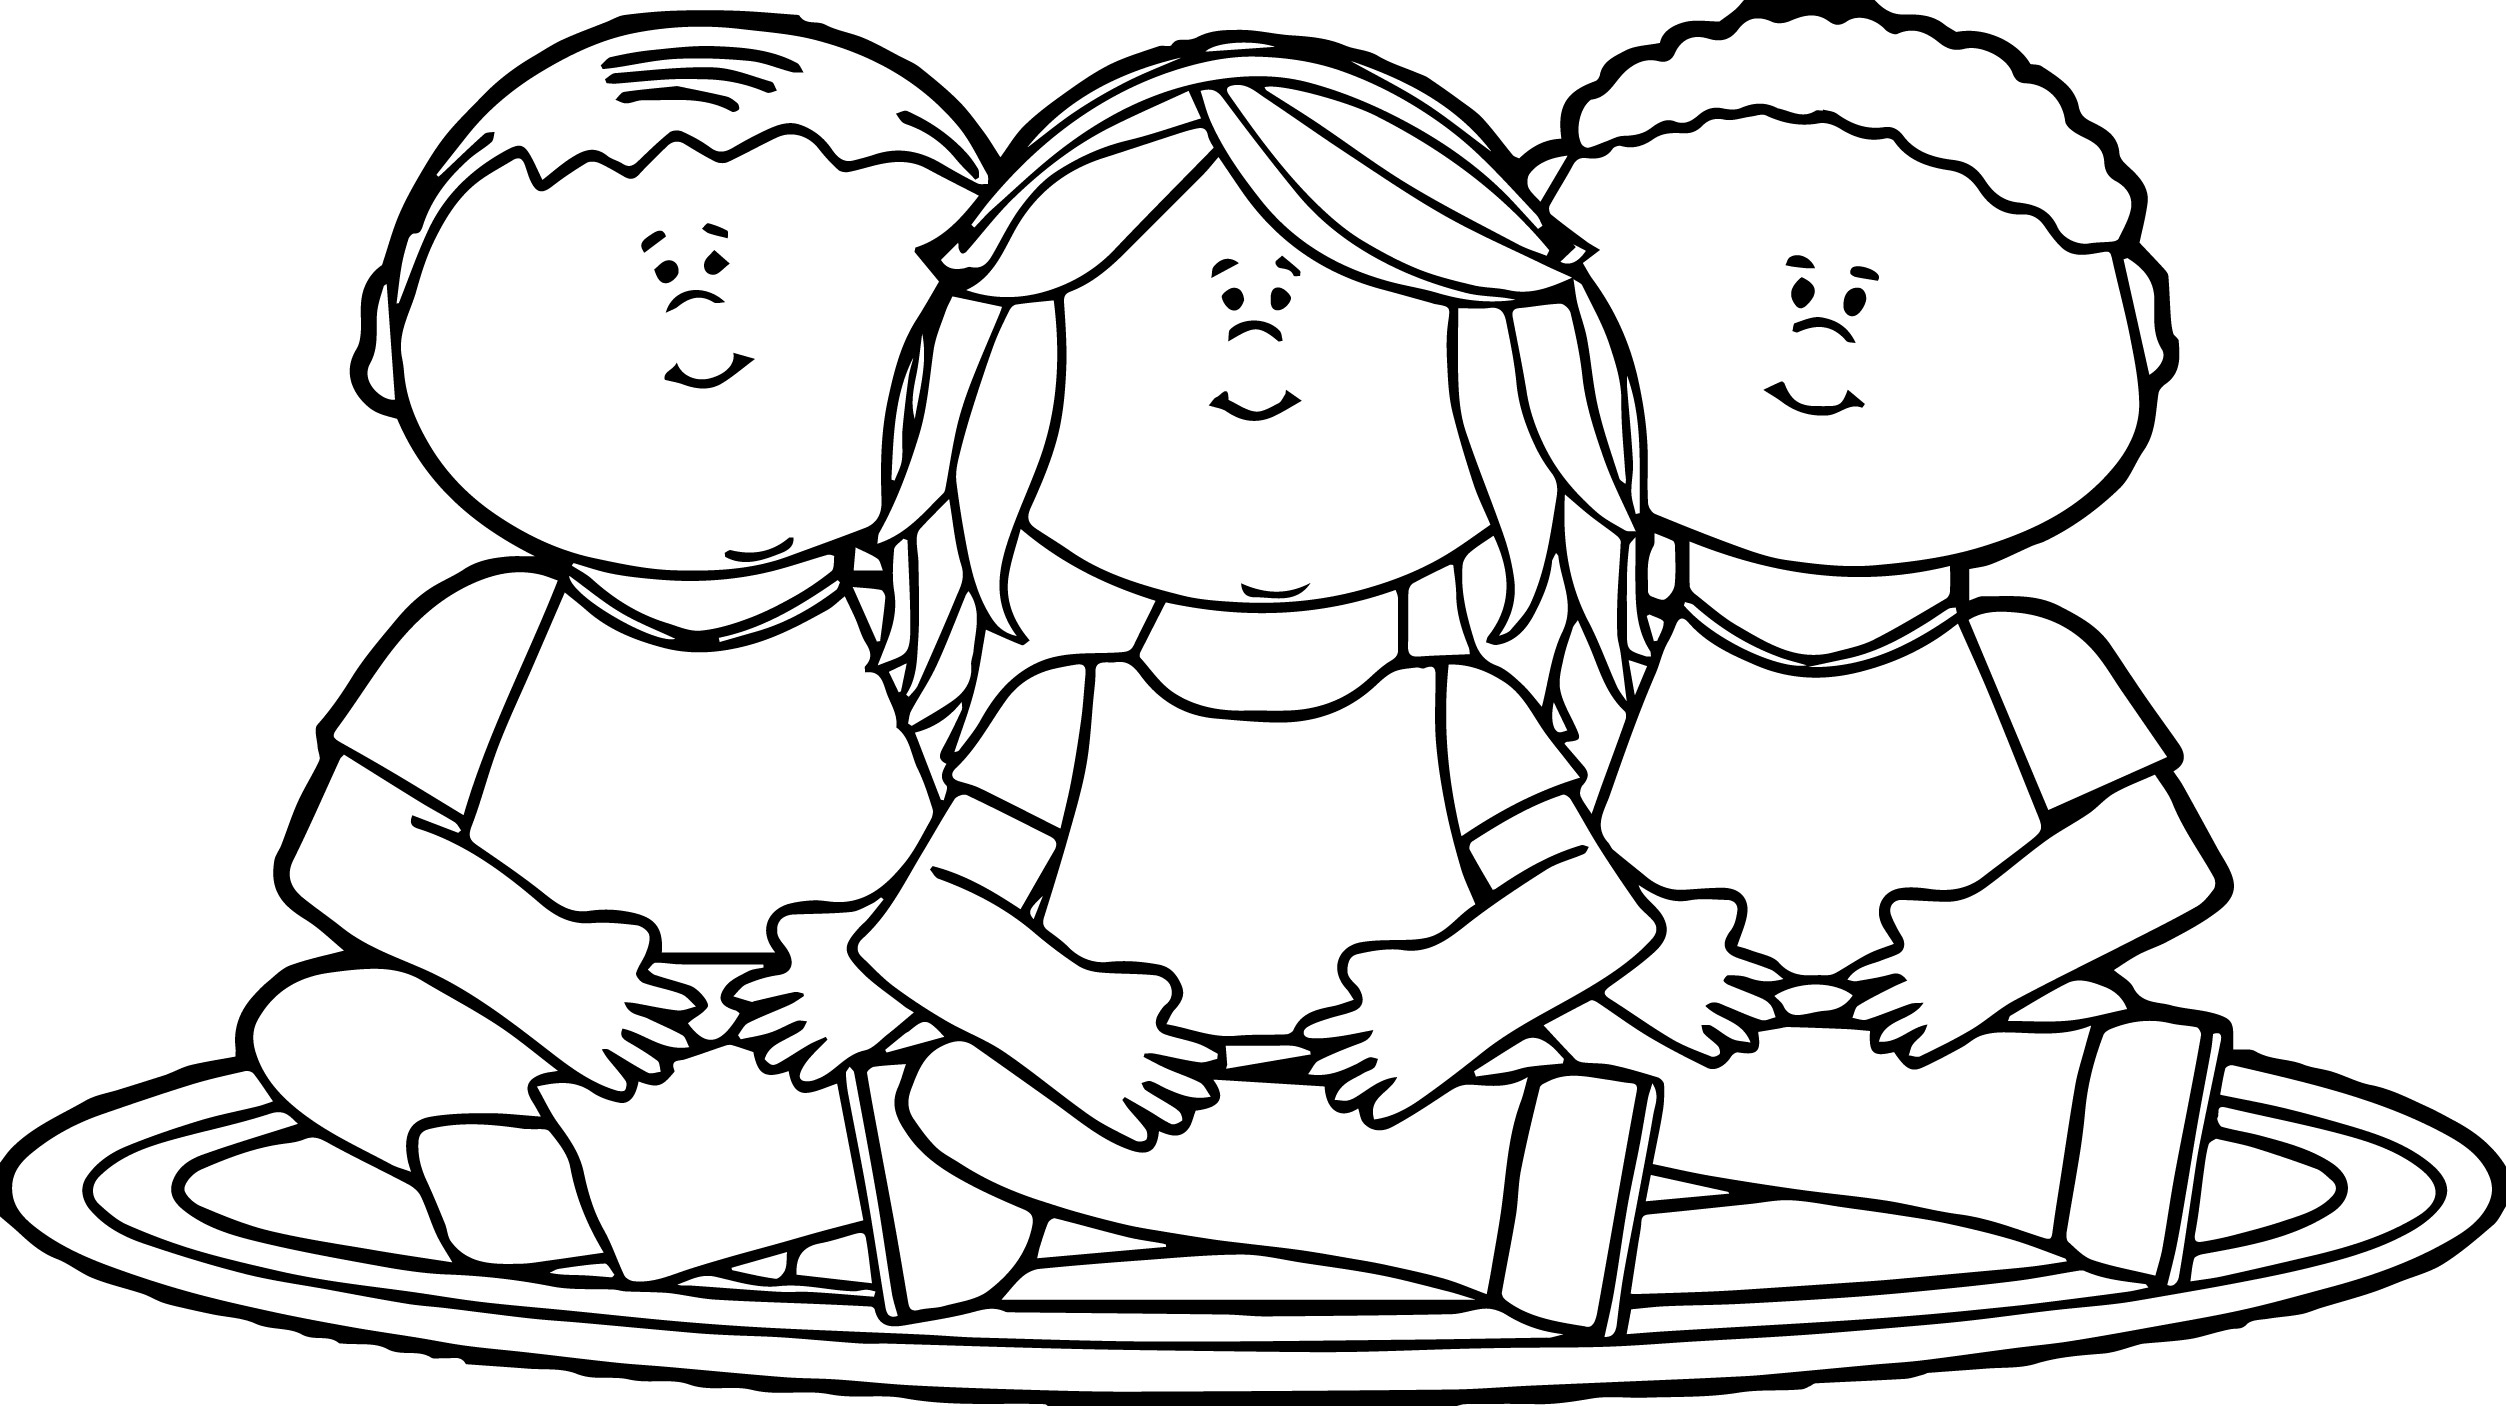 Kids Sitting On School Rug Kids Coloring Page